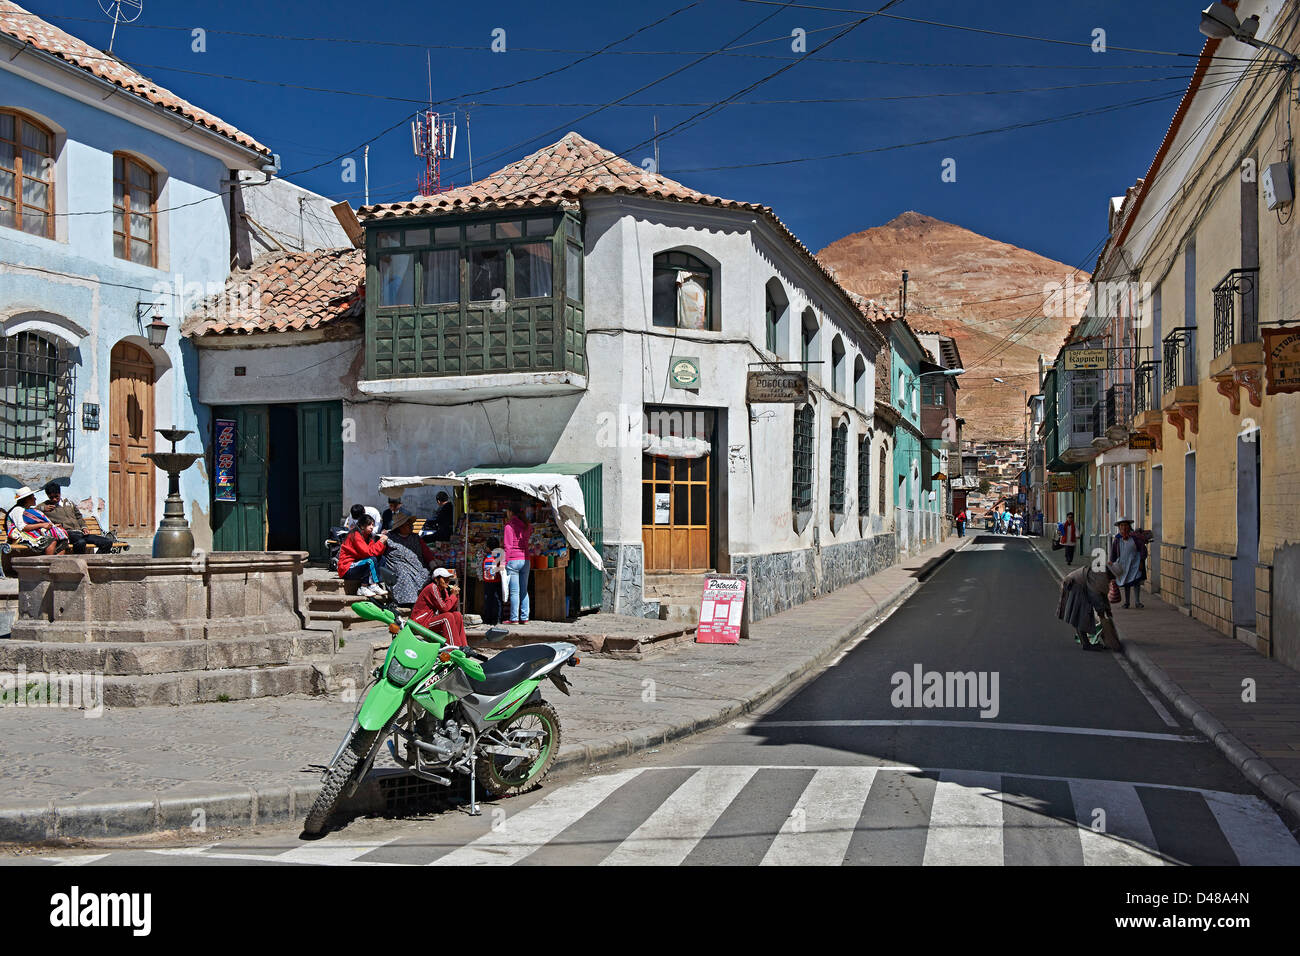 Colourful colonial architecture in the streets of Potosi, Bolivia, South America - Stock Image